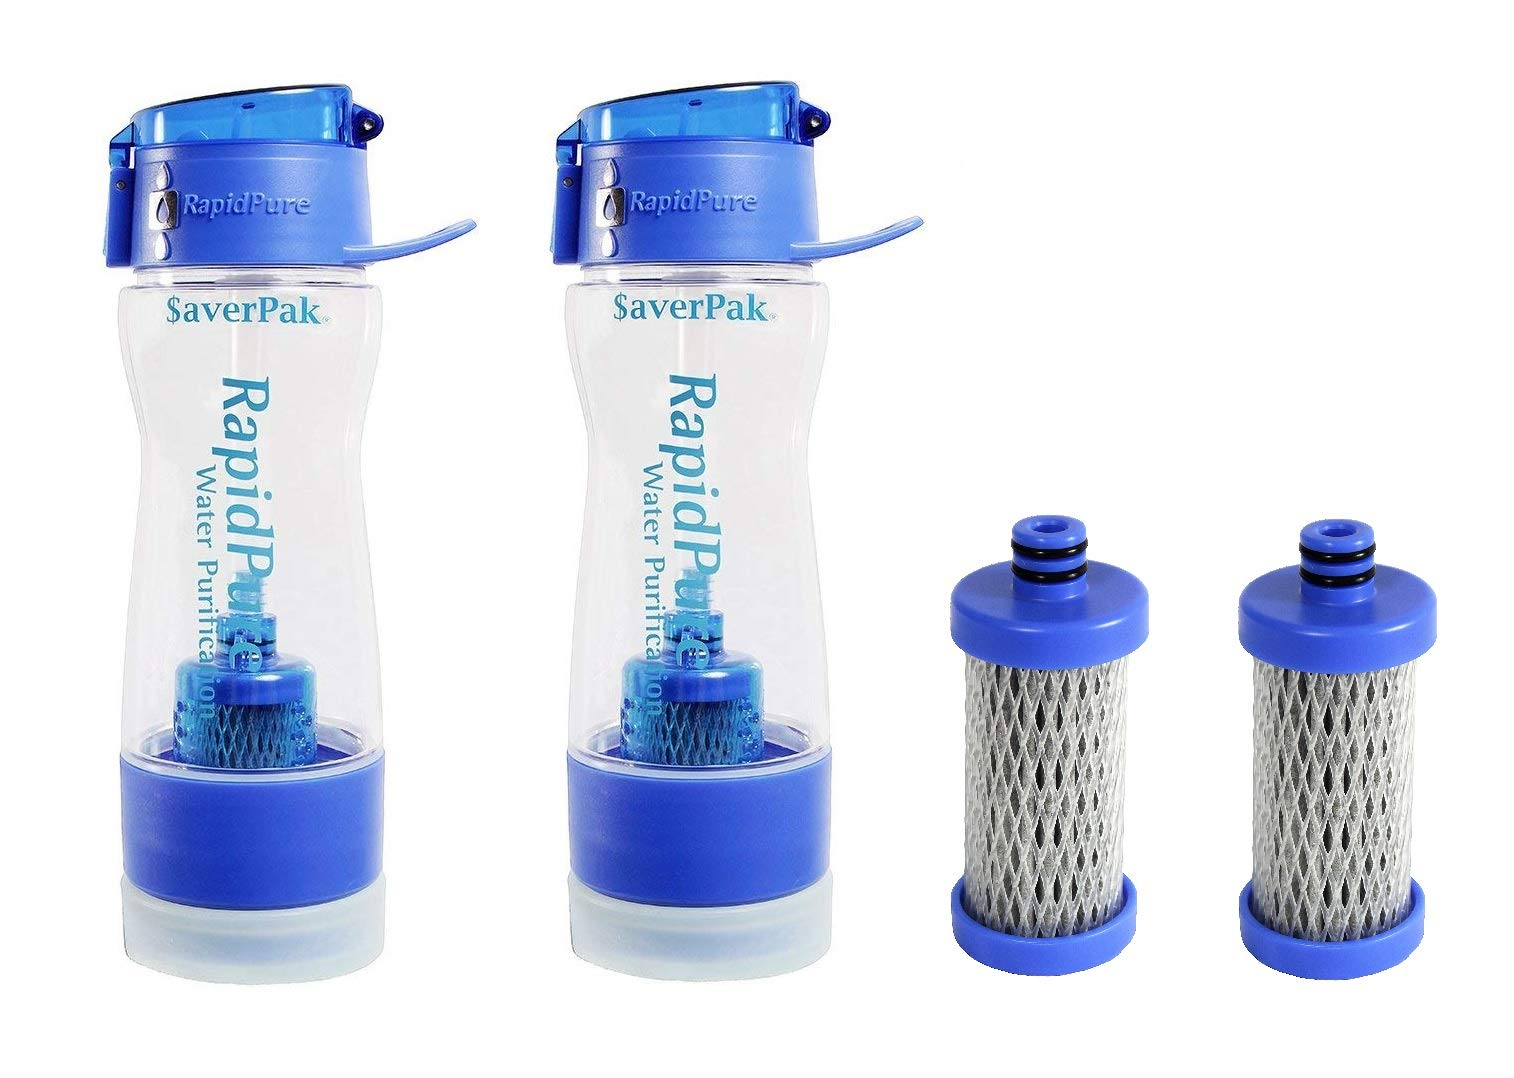 $averPak RapidPure Water Filter and Purifier (Bottle 2 Pack & 2 Spare Filters)